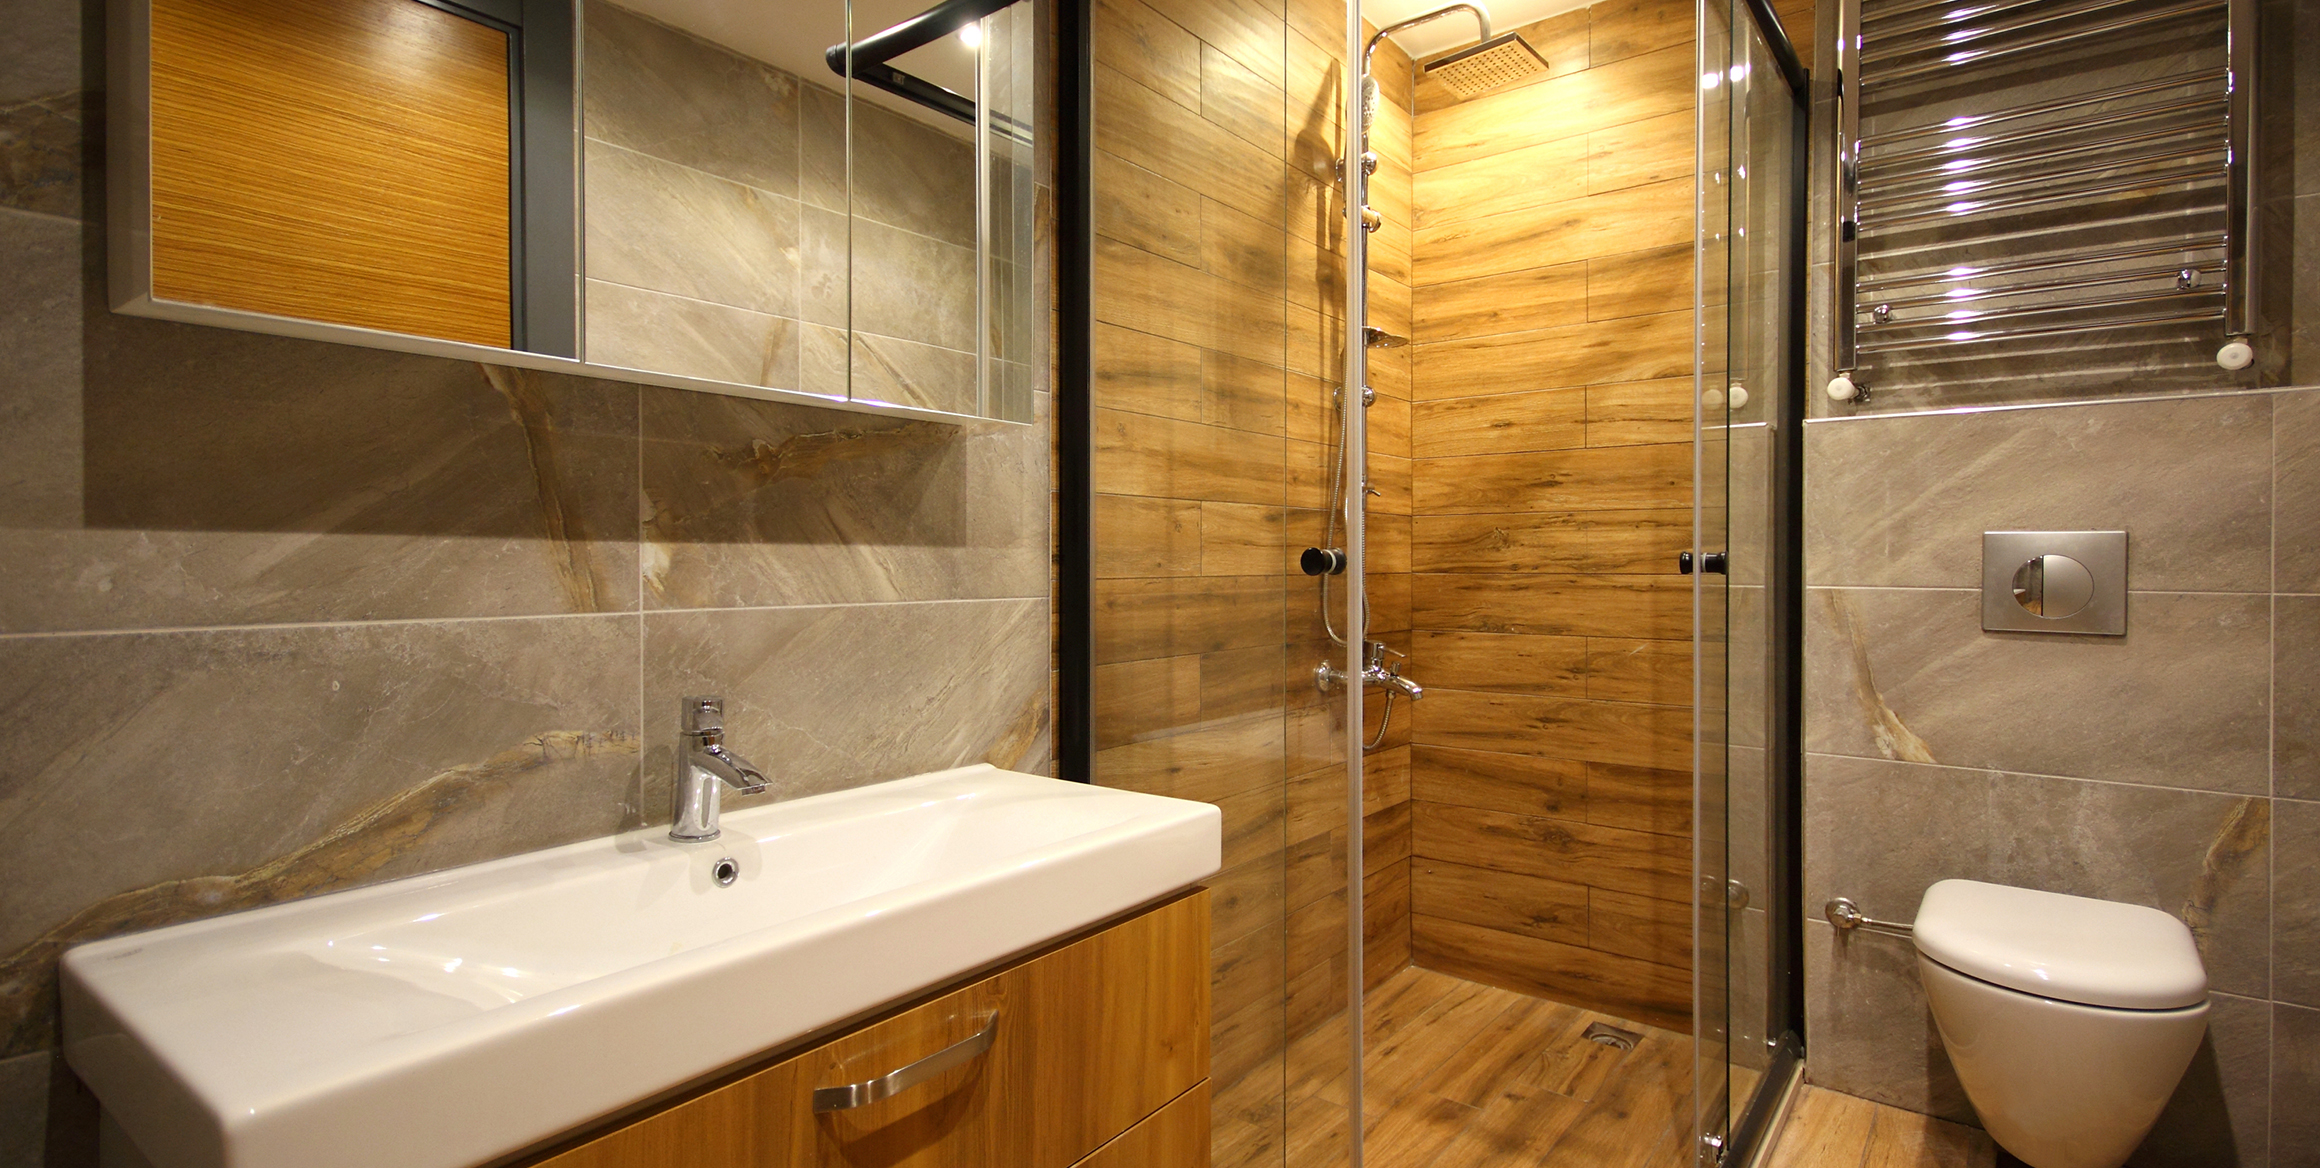 Complete Bathroom Renovations in Greater Manchester